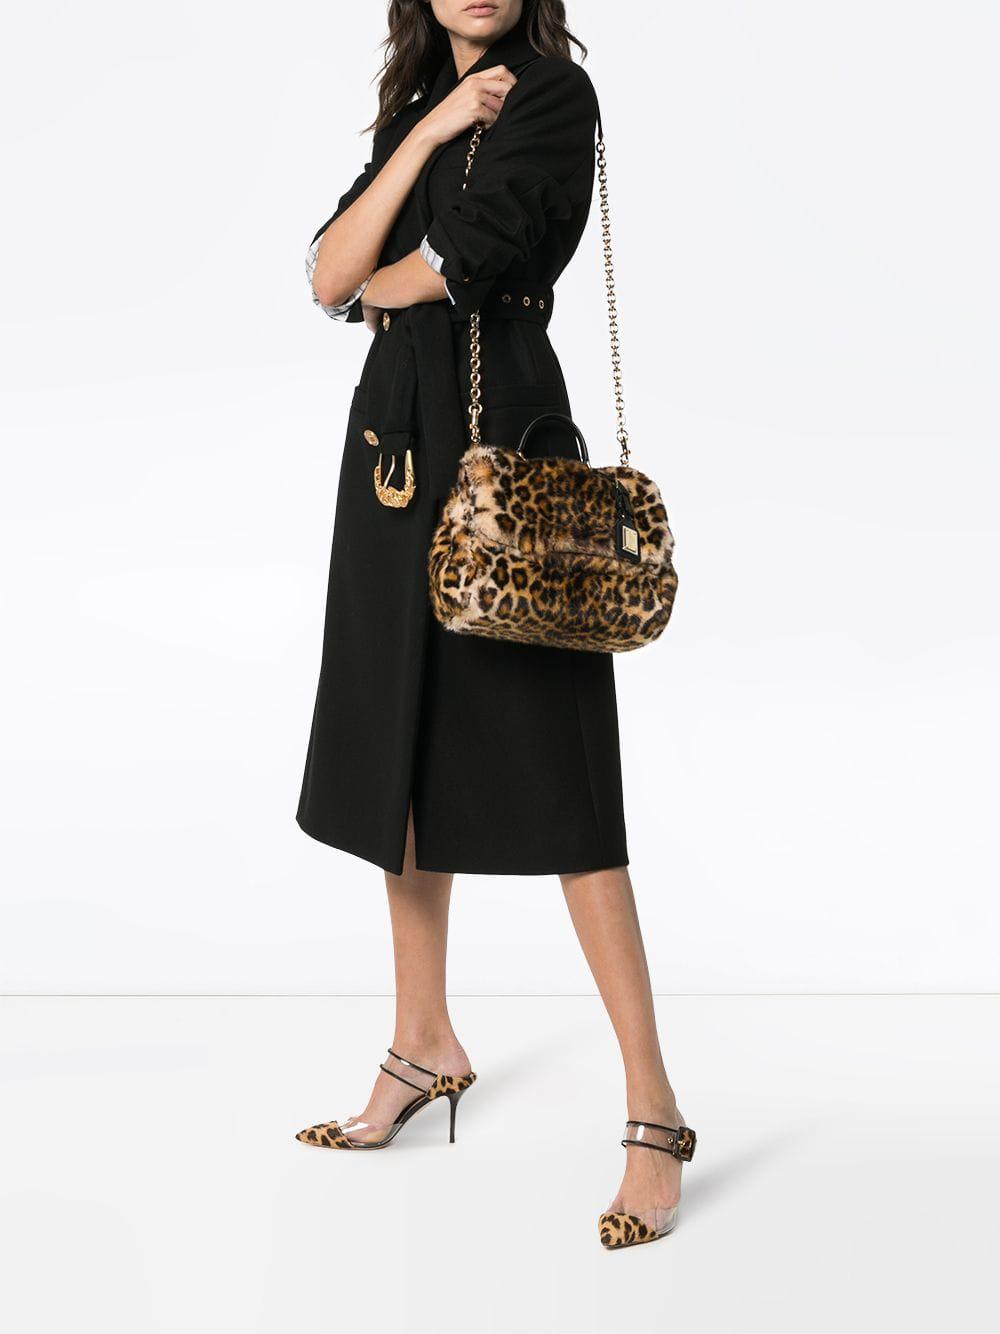 Lyst - Dolce   Gabbana Brown And Yellow Sicily Calf Hair Shoulder Bag in  Brown - Save 21% 833607491067f